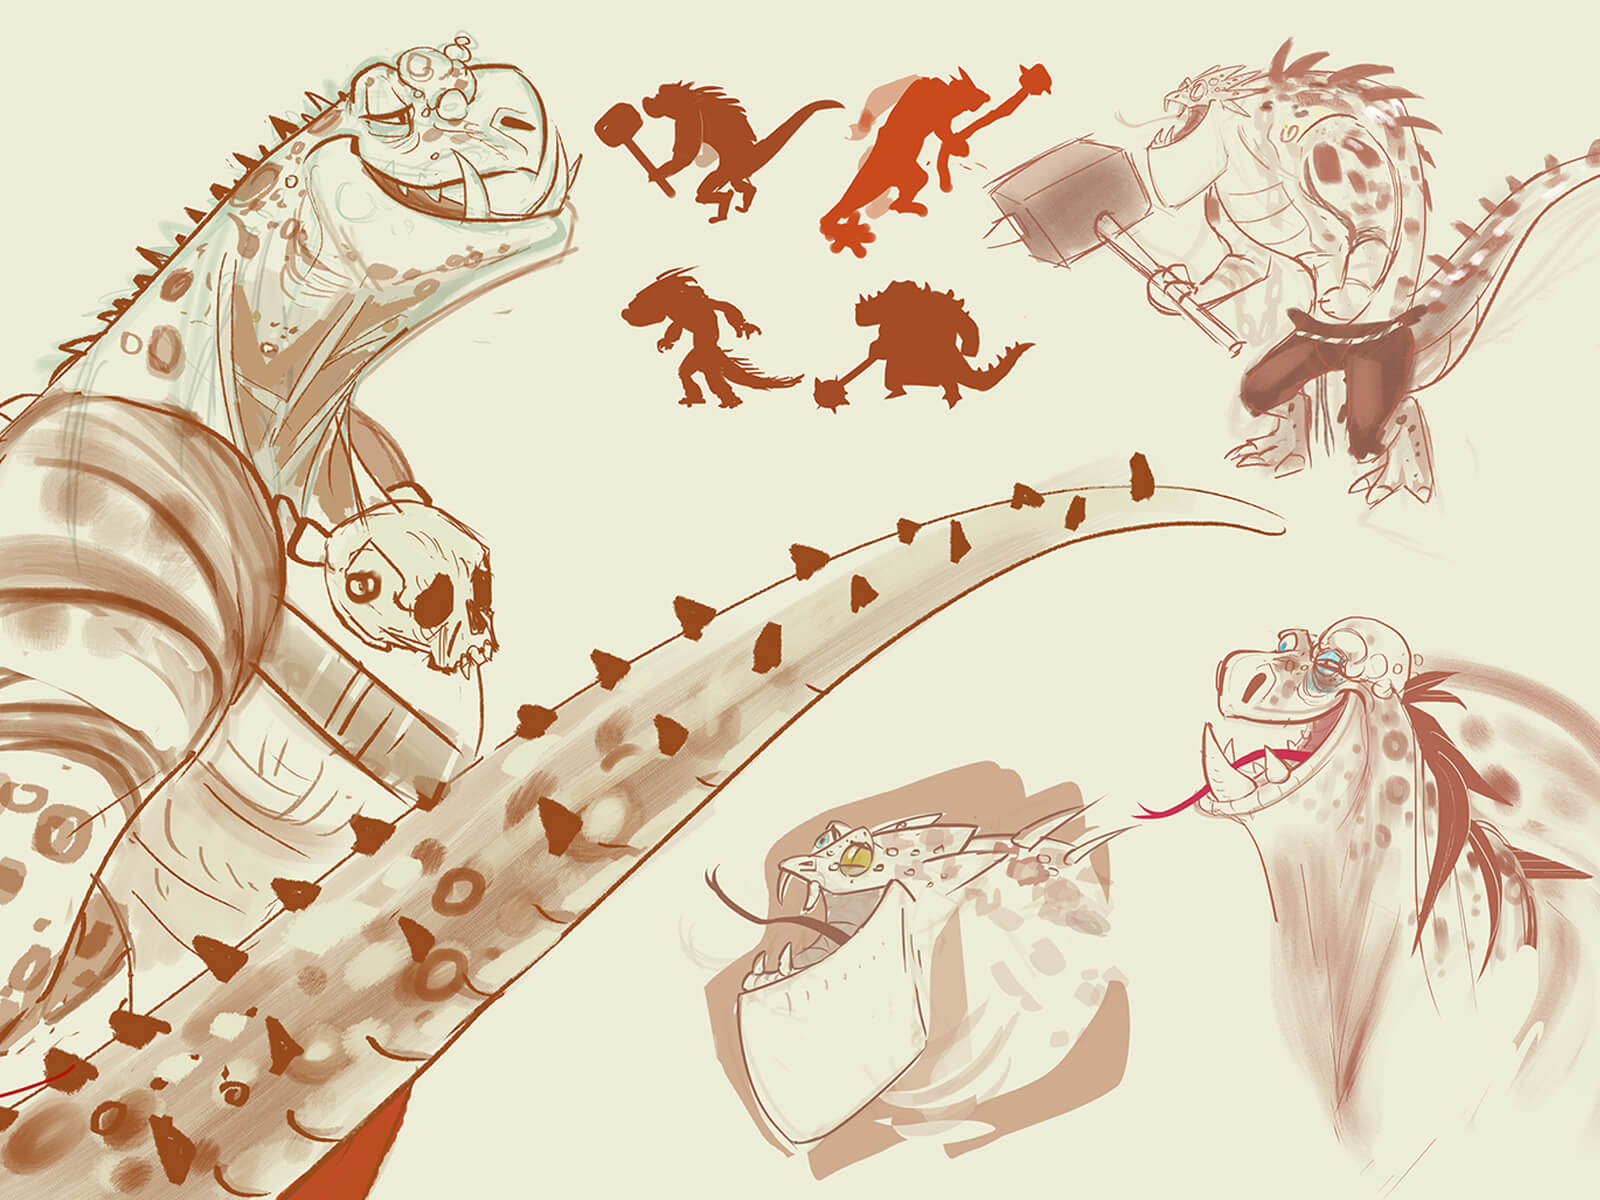 digital paintings of the various facial expressions and gestures of several lizard-like creatures